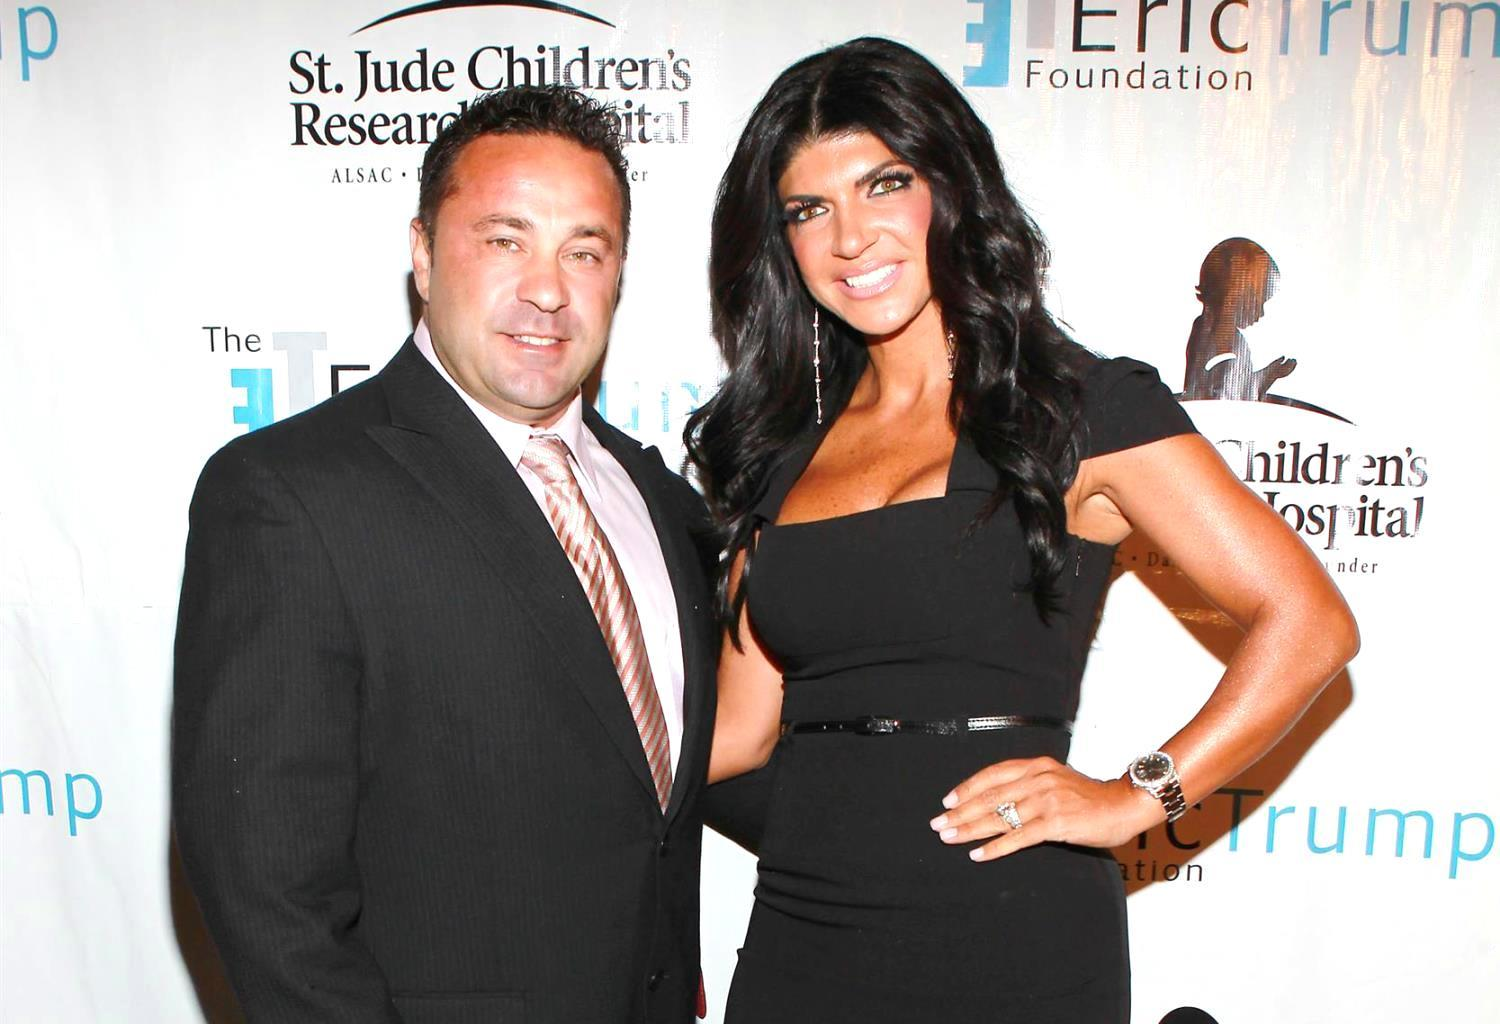 Teresa Giudice Not Wearing Her Wedding Ring While Joe's Still In Prison - Check Out The Pic!